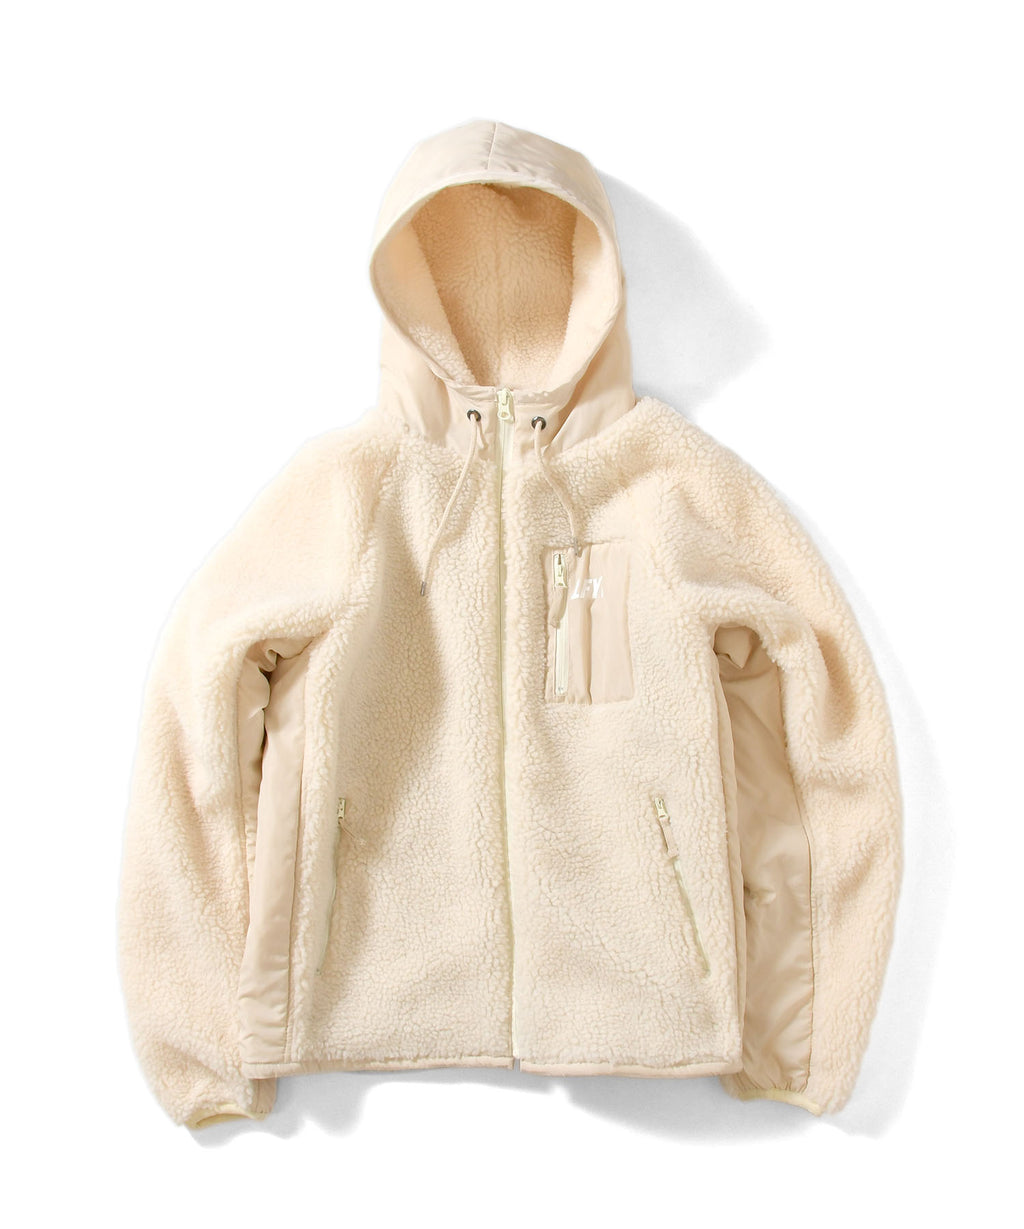 SHERPA FLEECE ZIP PARKA LA201012 NATURAL